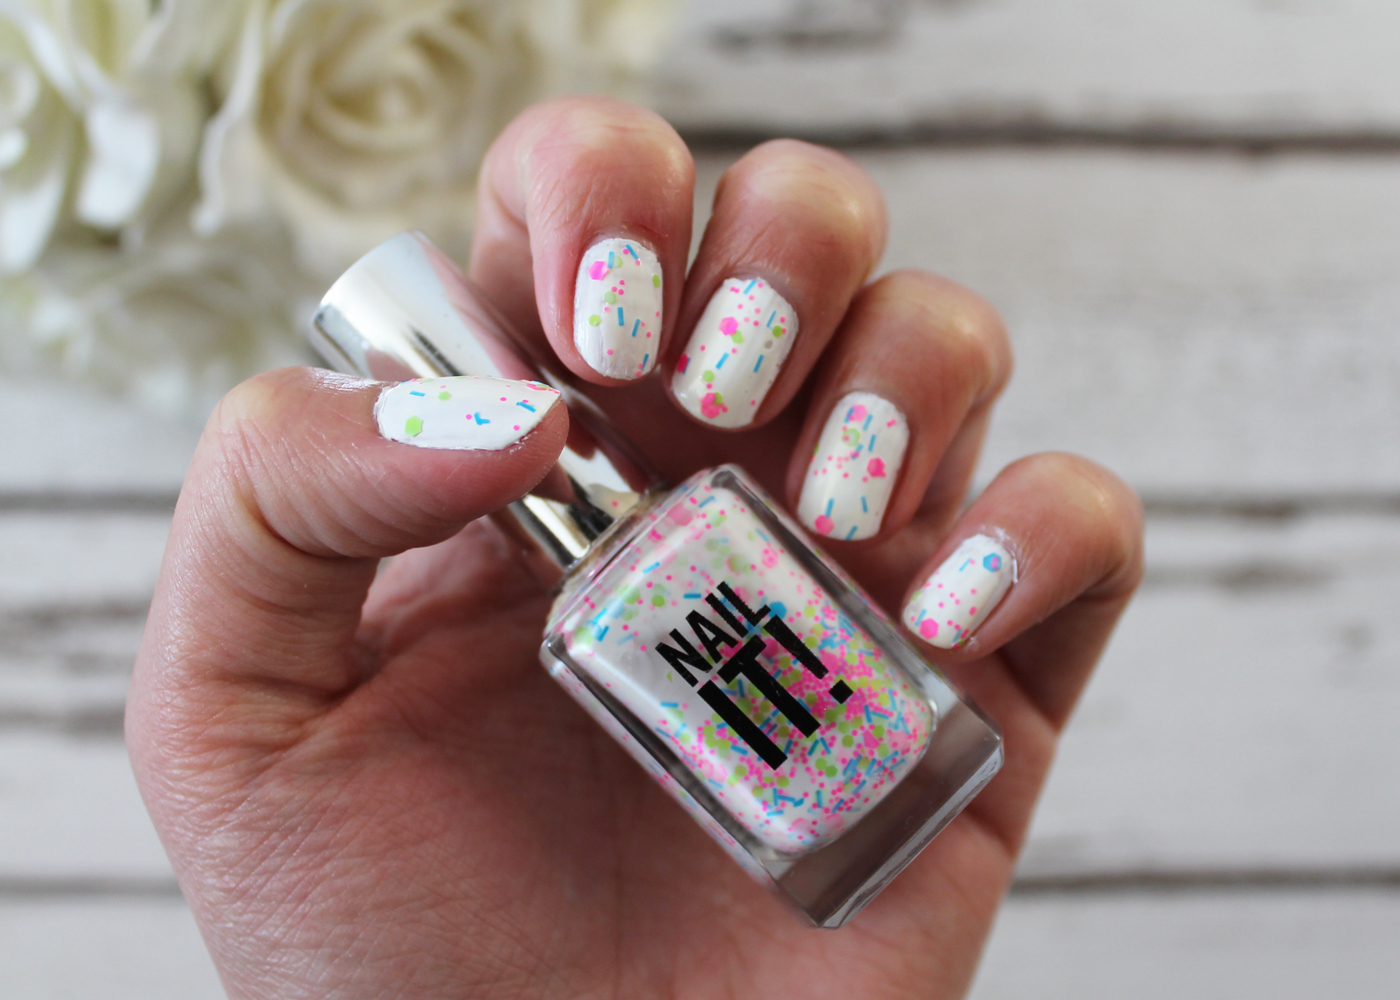 Sportsgirl Nail It nail polish